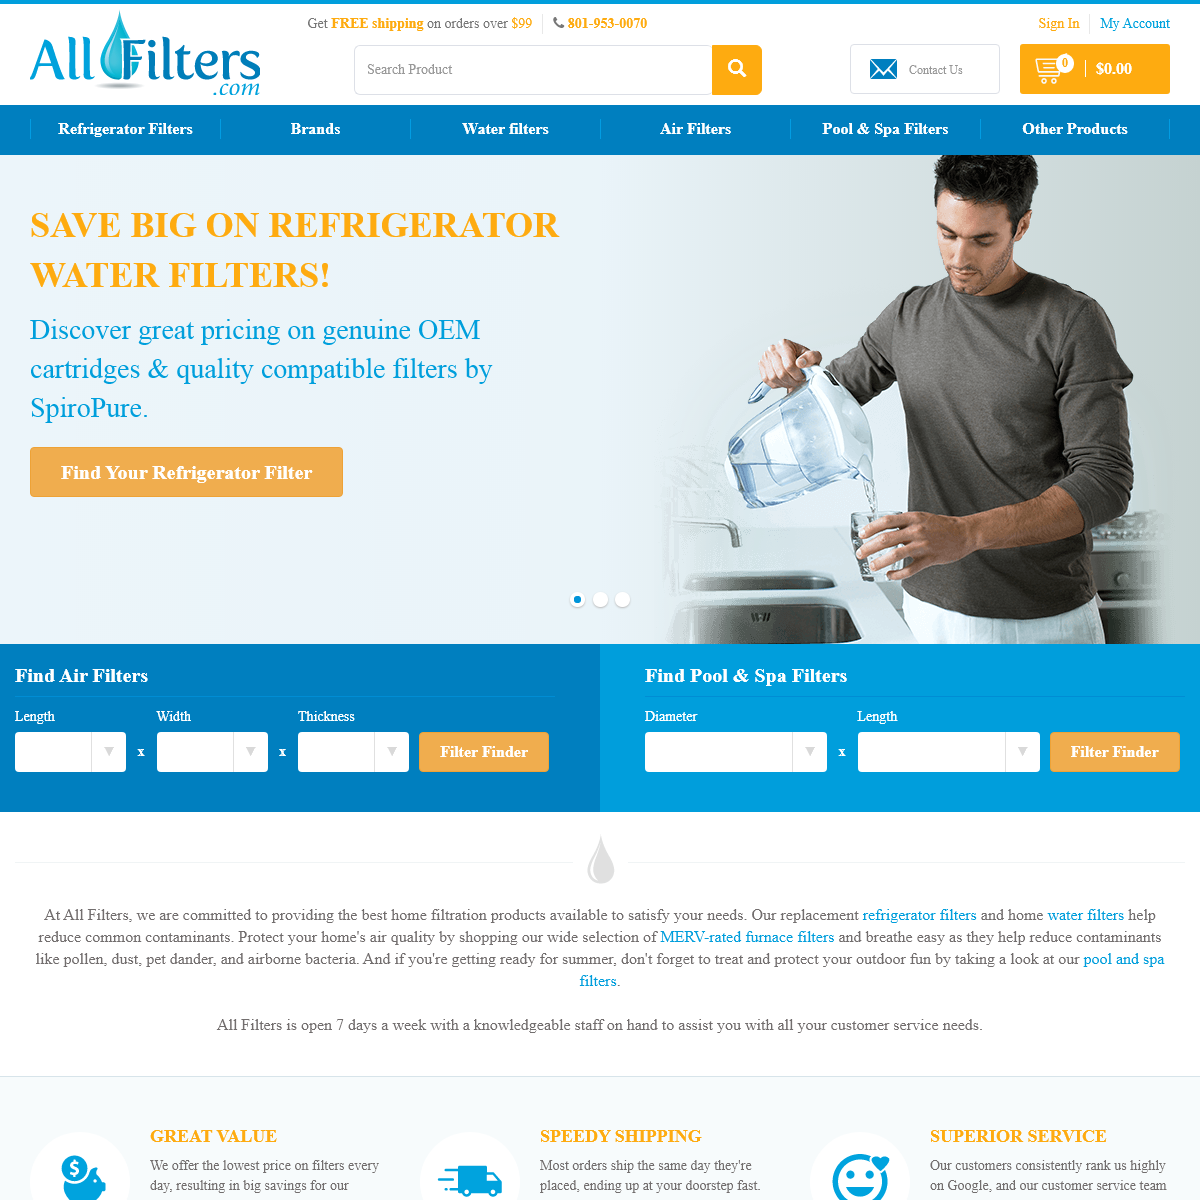 All Filters - Serving ALL Your Filtration Needs